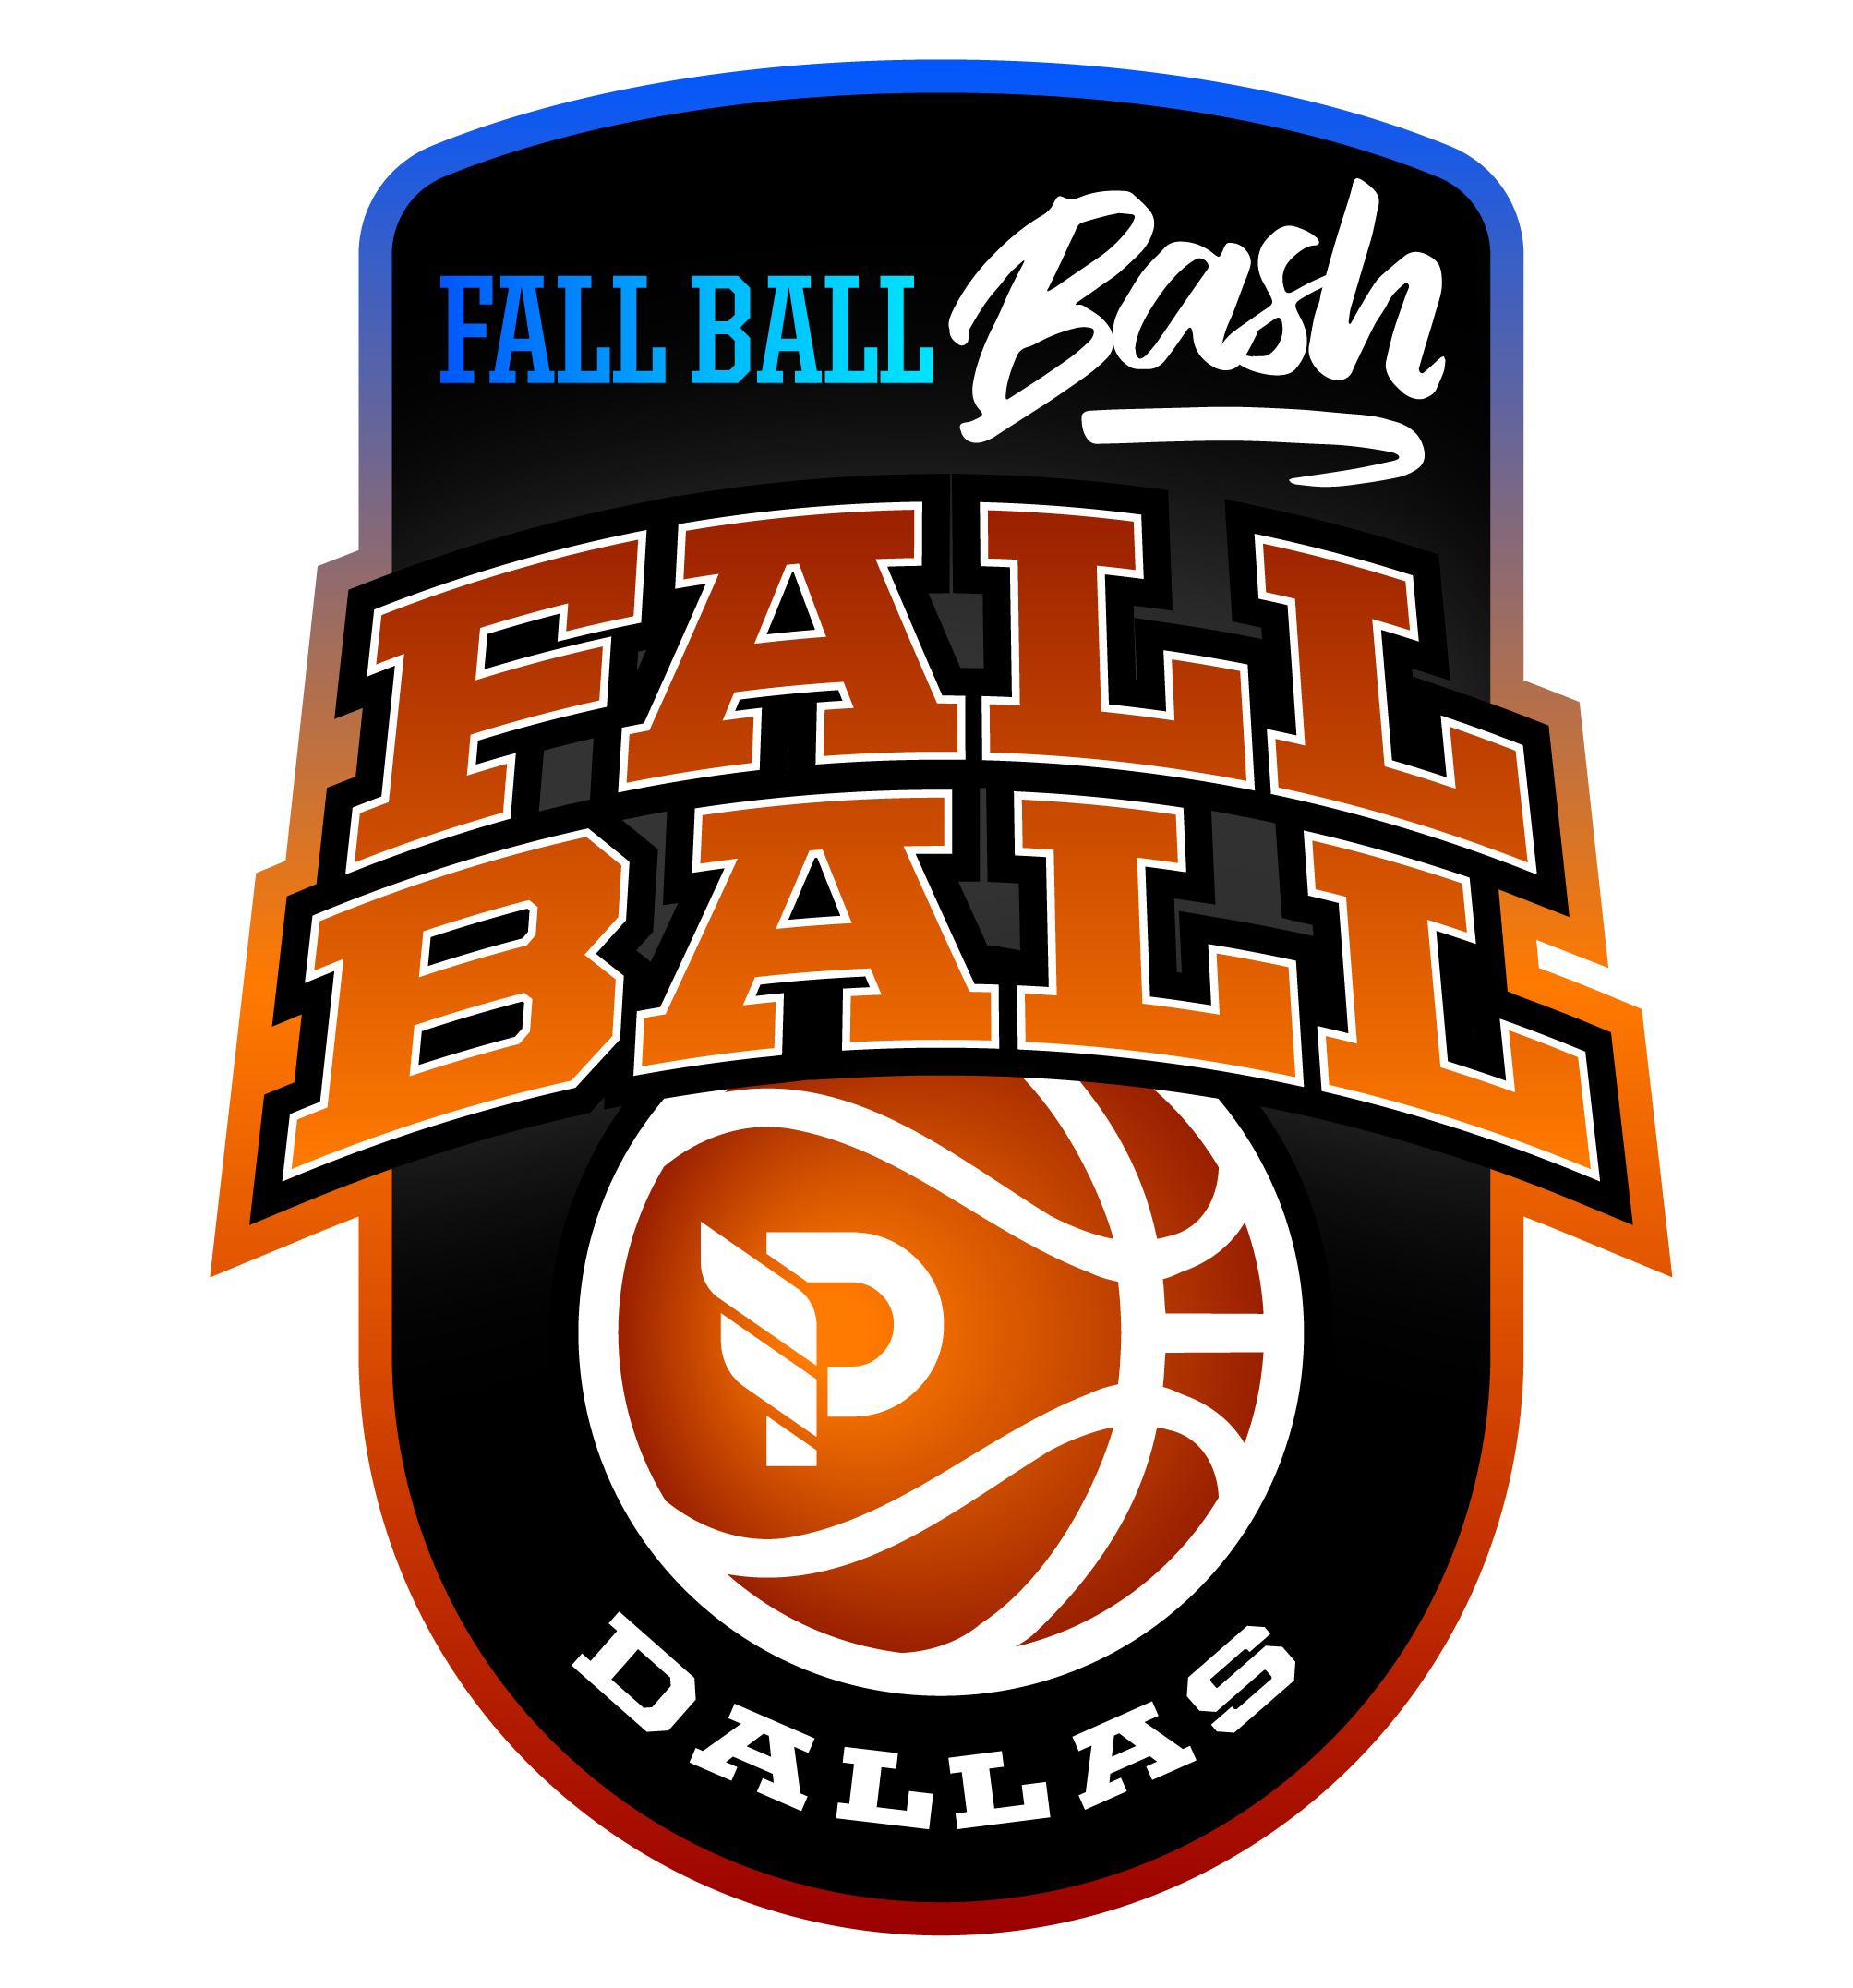 Fall Ball Bash- Dallas